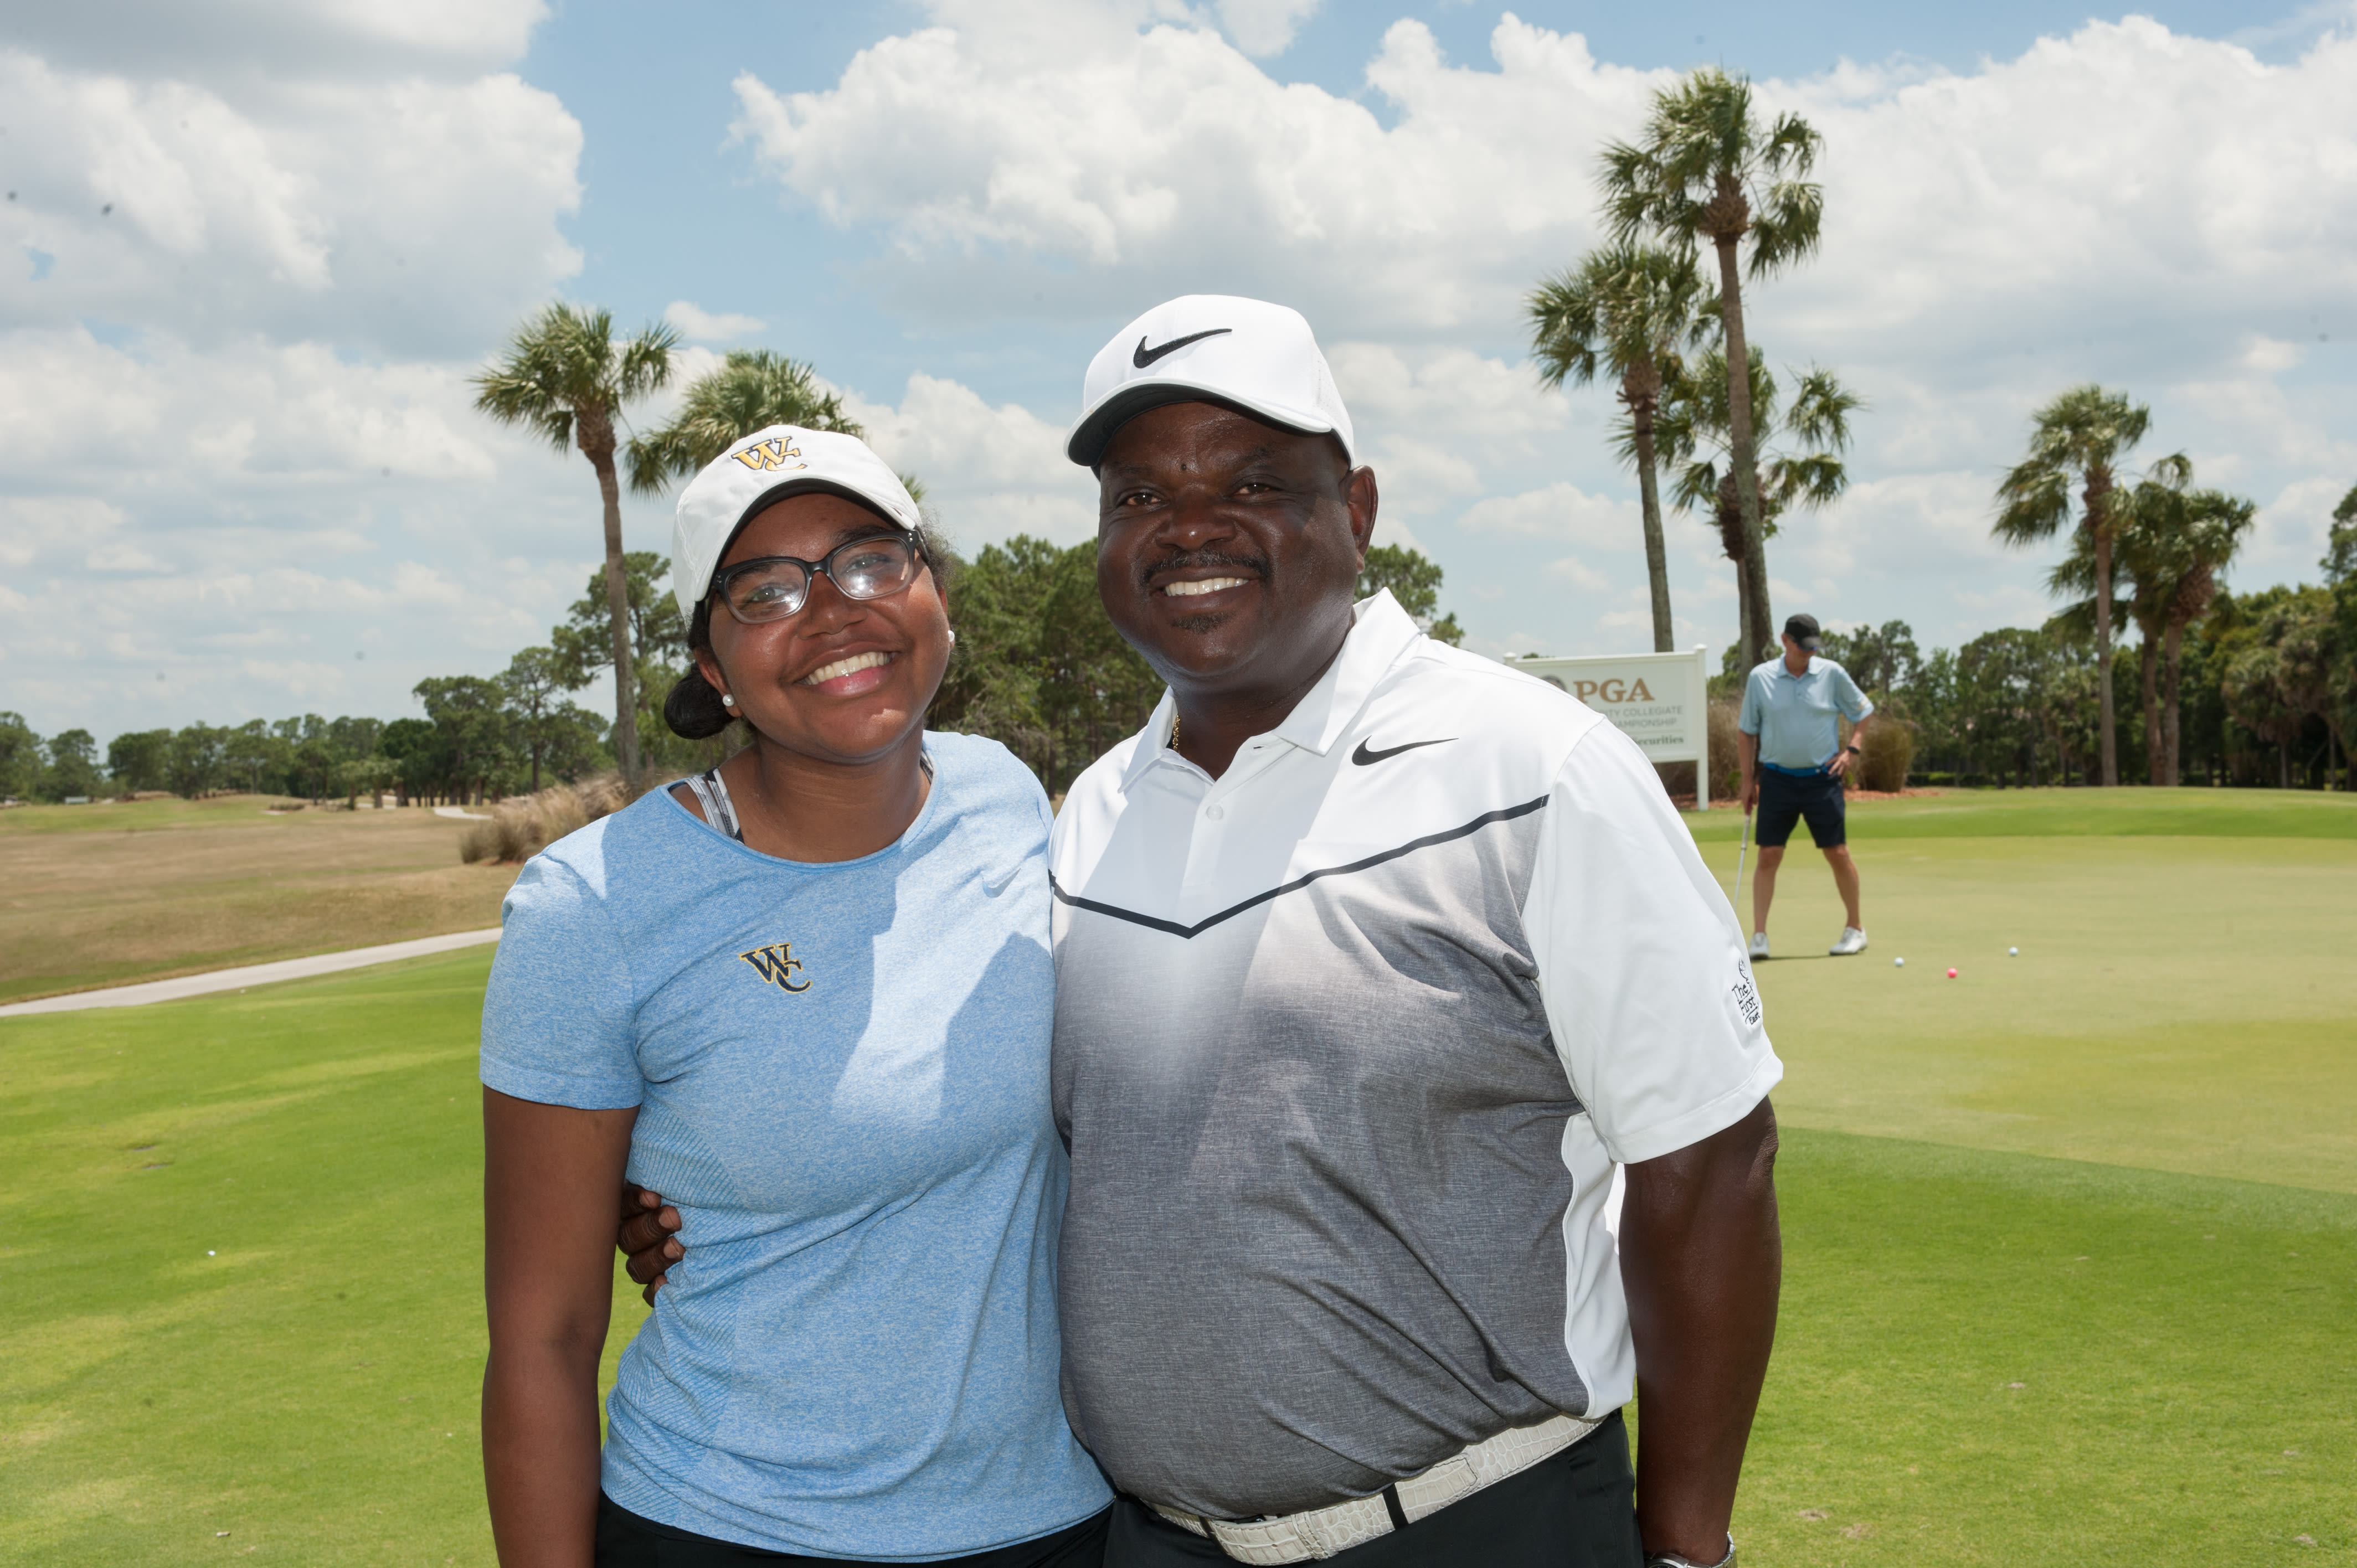 Jeff Dunovant, PGA with his daughter, Kendall.